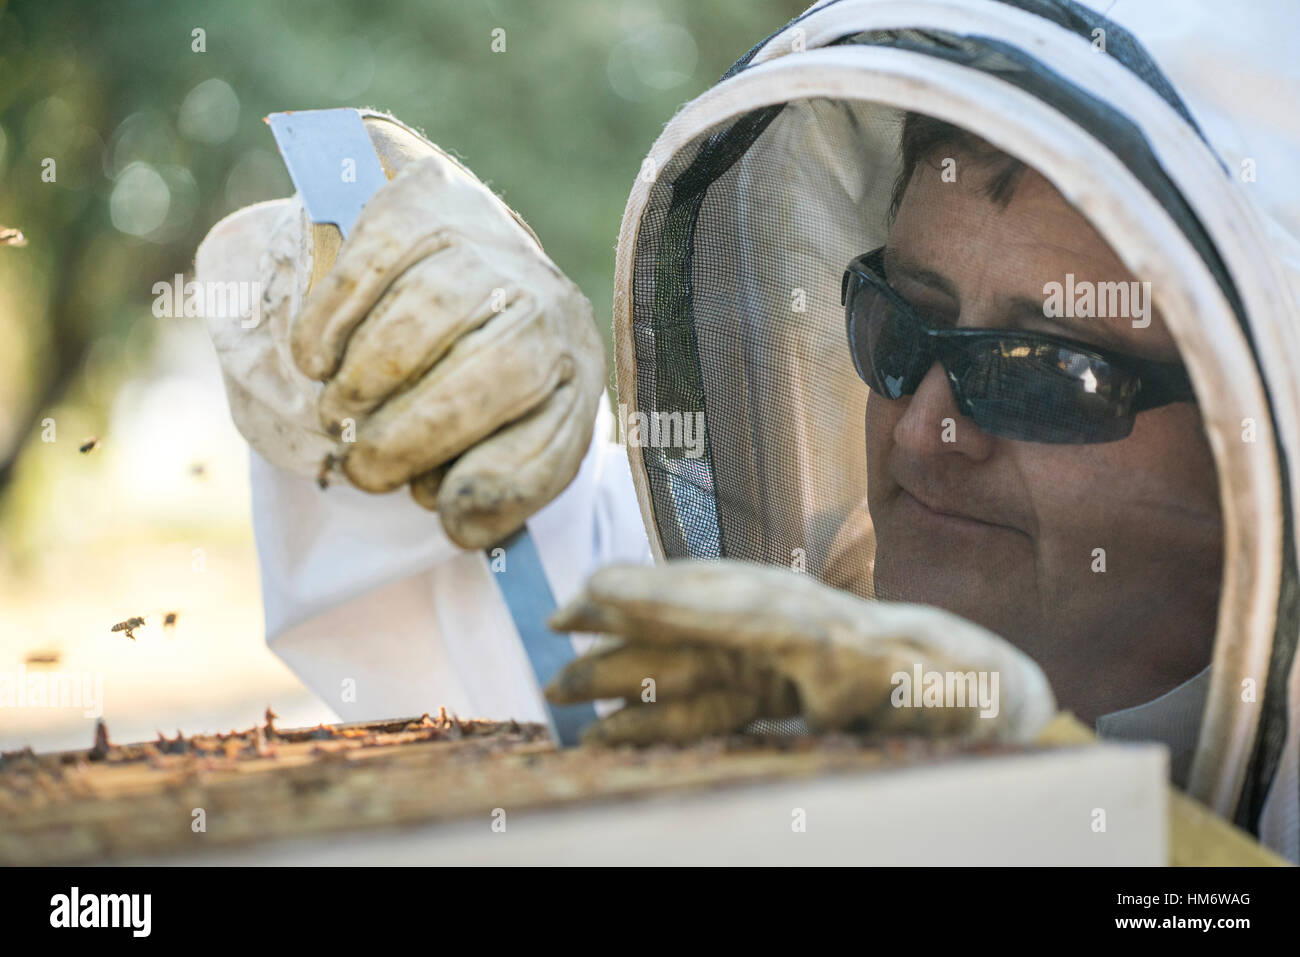 Beekeeper using hand tool for removing bees from beehive frame - Stock Image